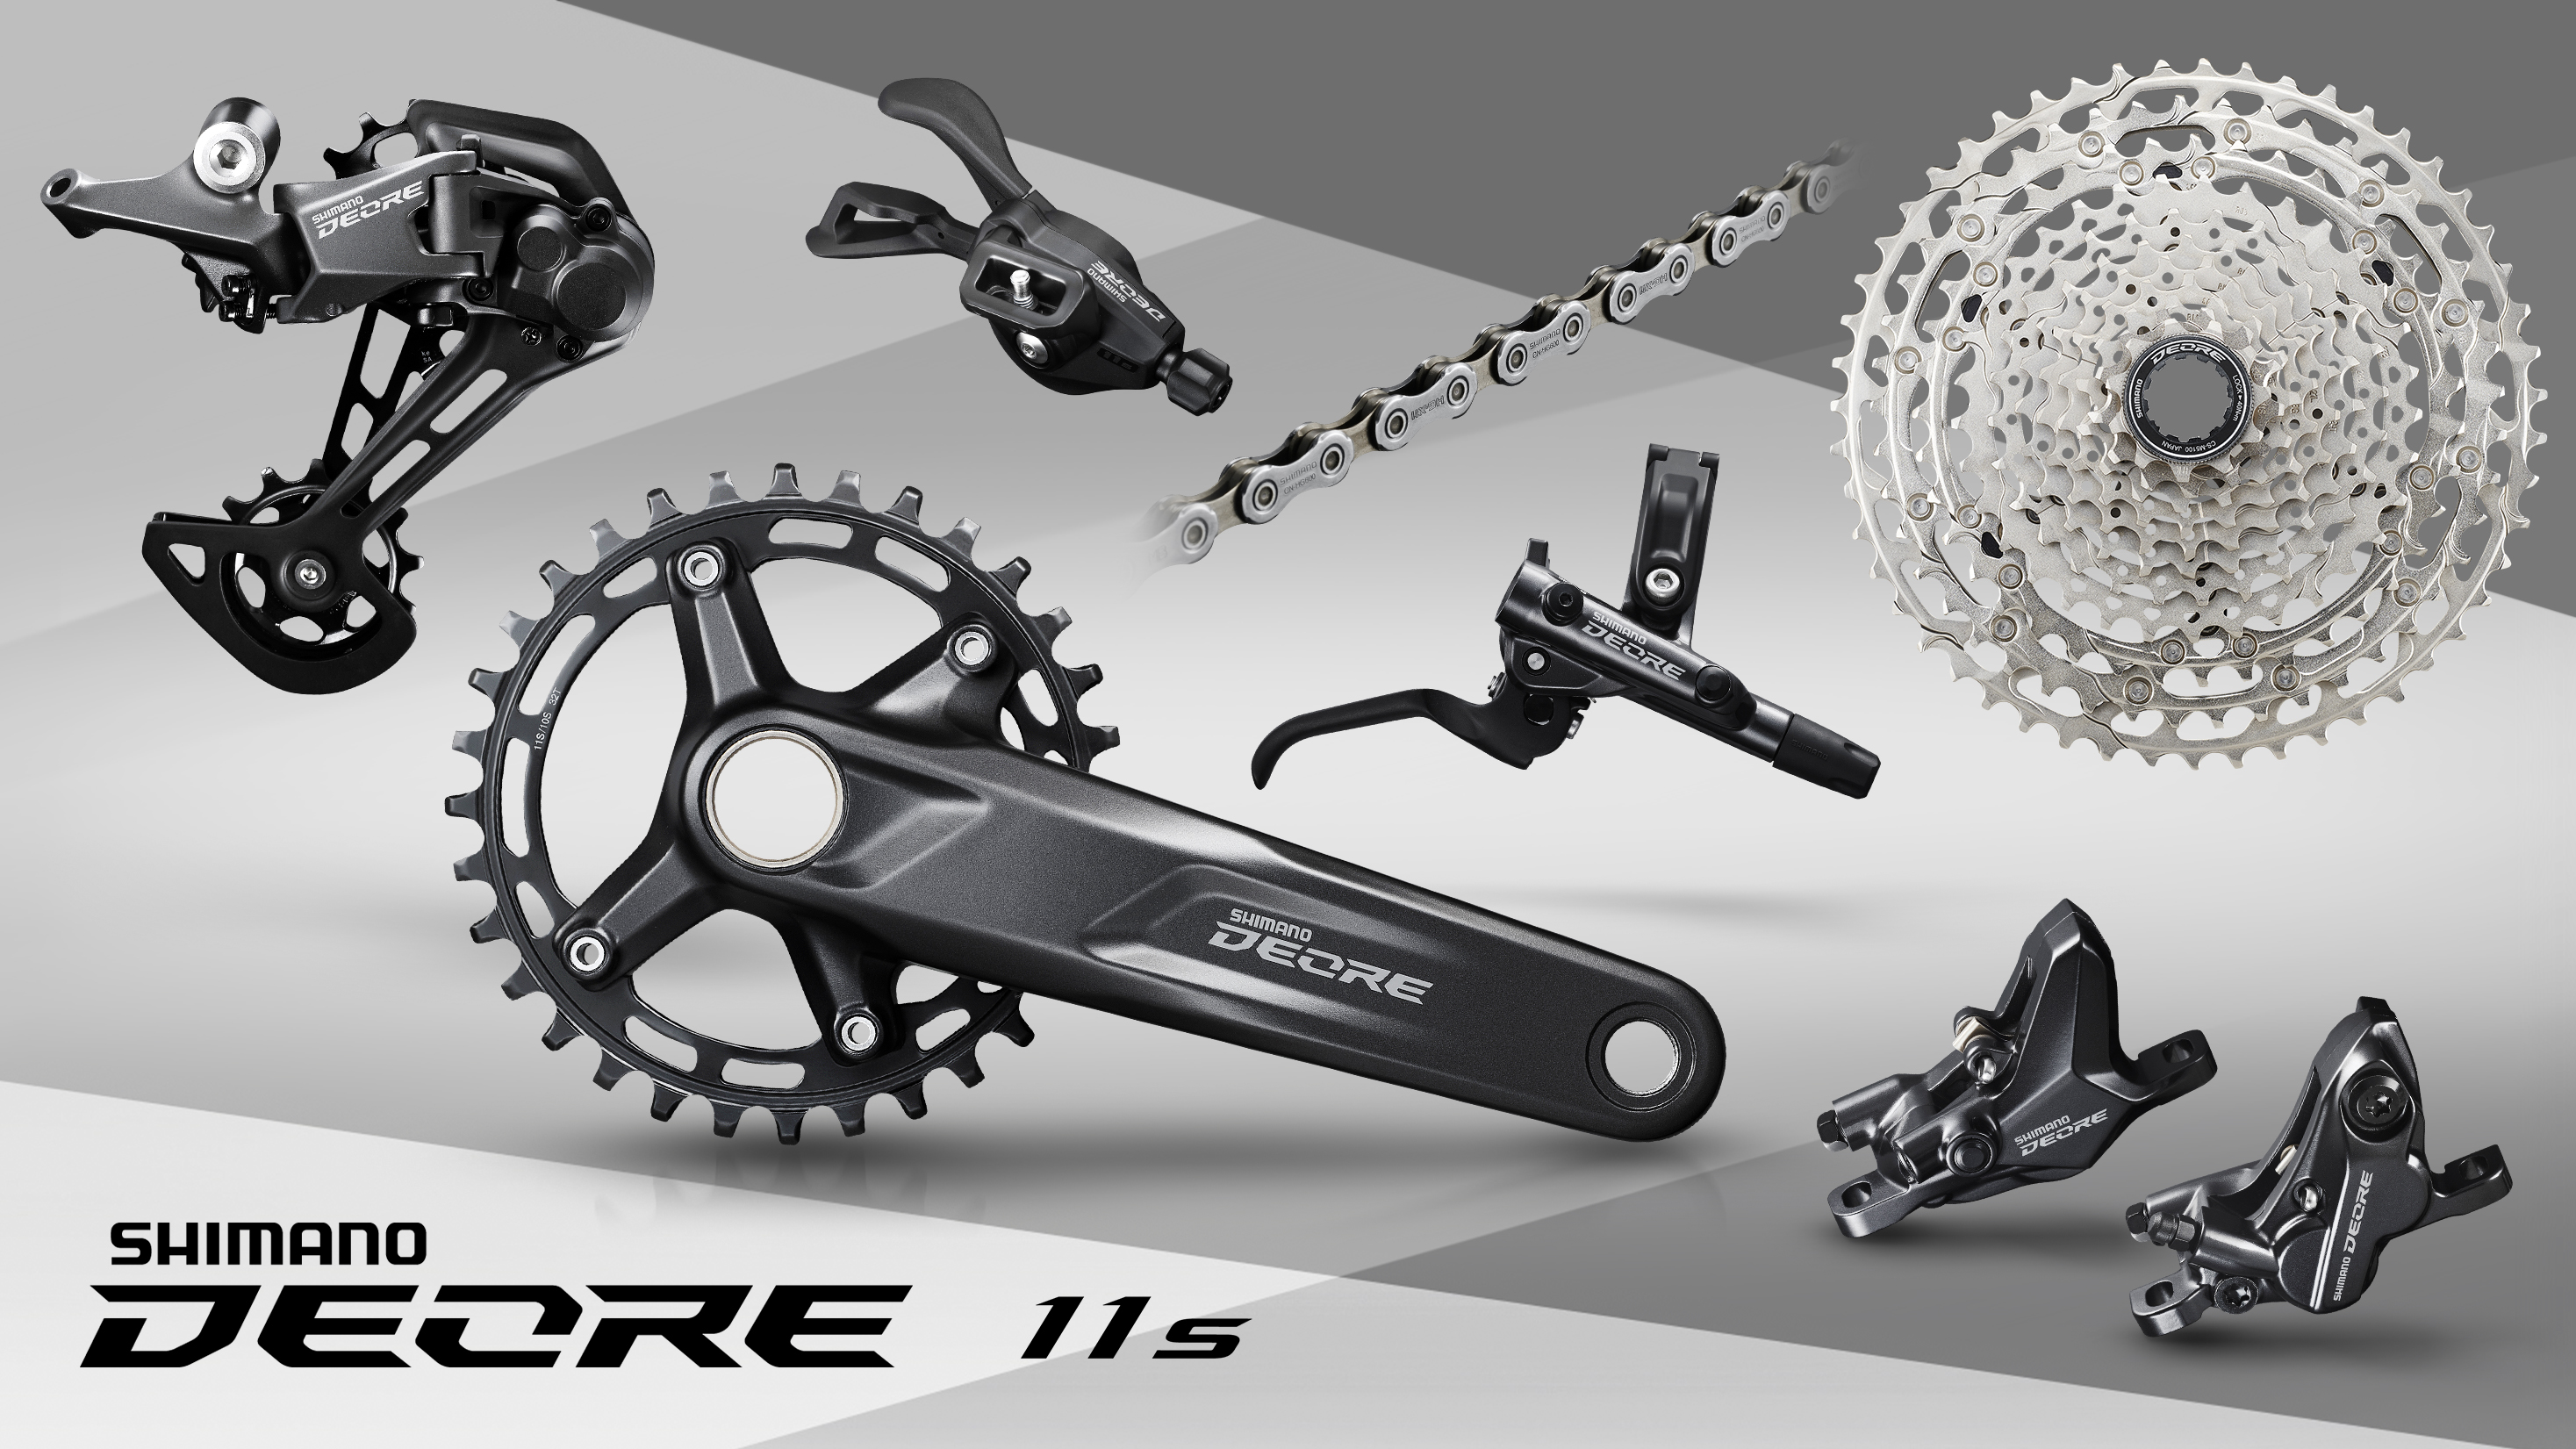 New, wider 1x and 2x gearing options to keep you rolling with minimal investment.